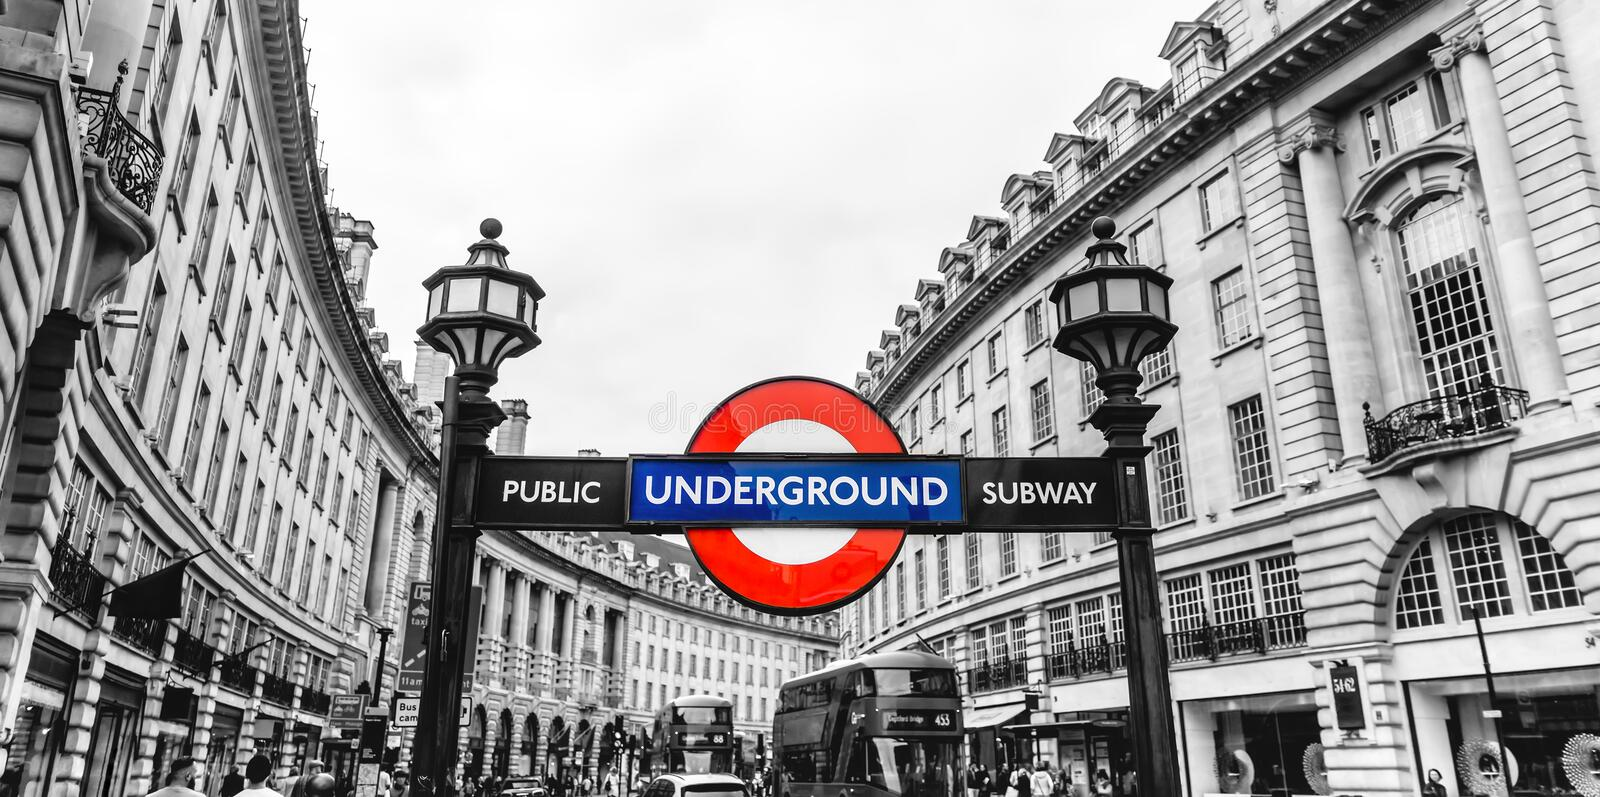 Piccadilly Circus station underground tube street signage, London, England, UK royalty free stock images